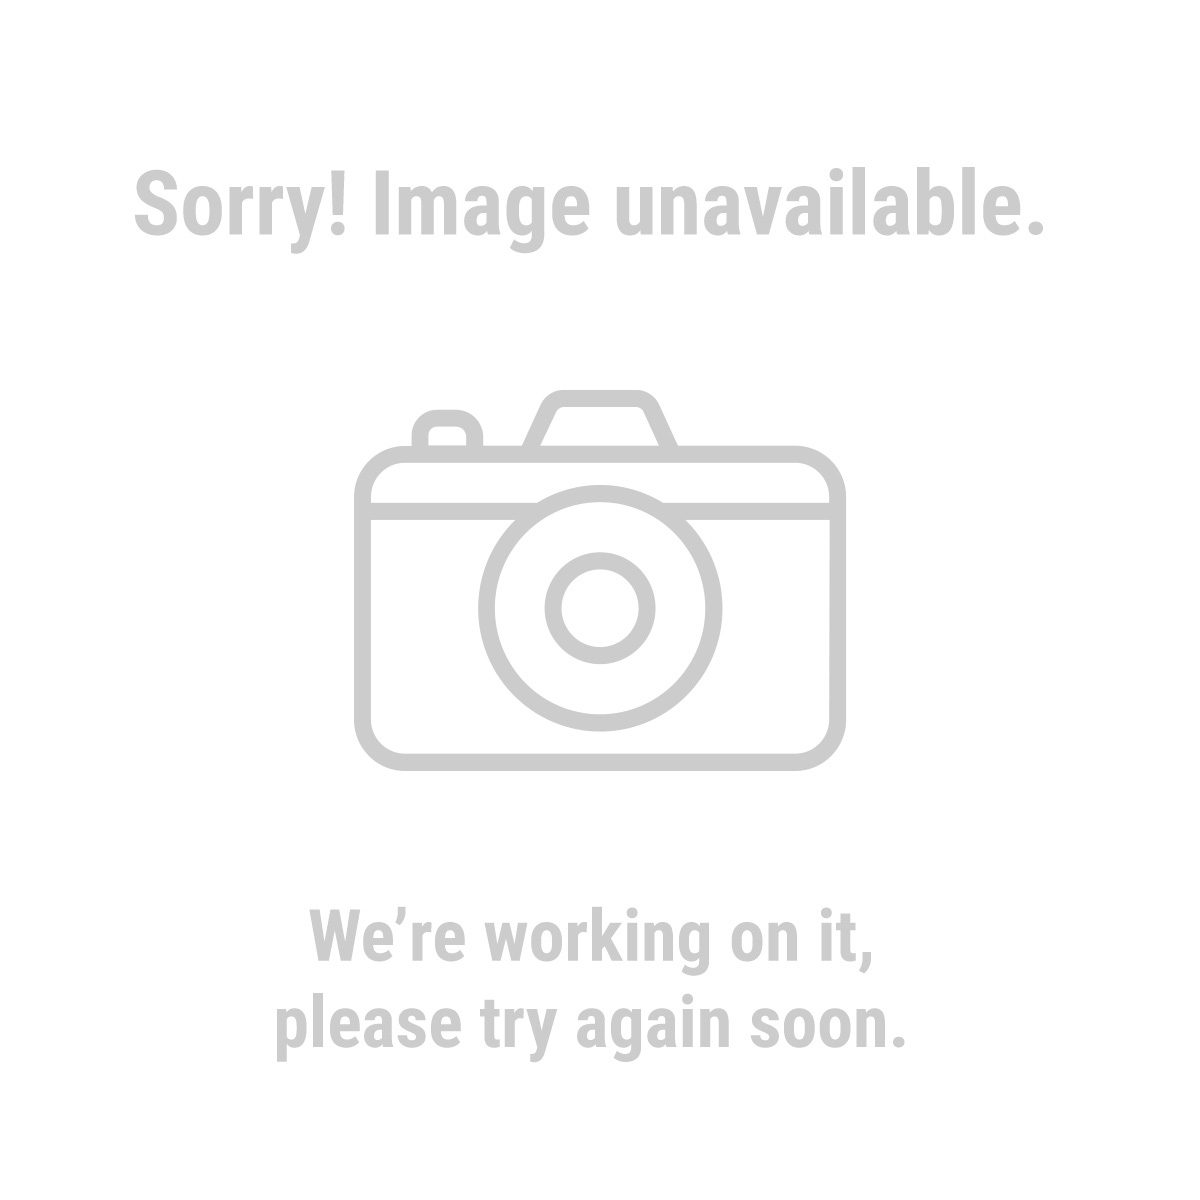 Pittsburgh 94963 Angle Finder